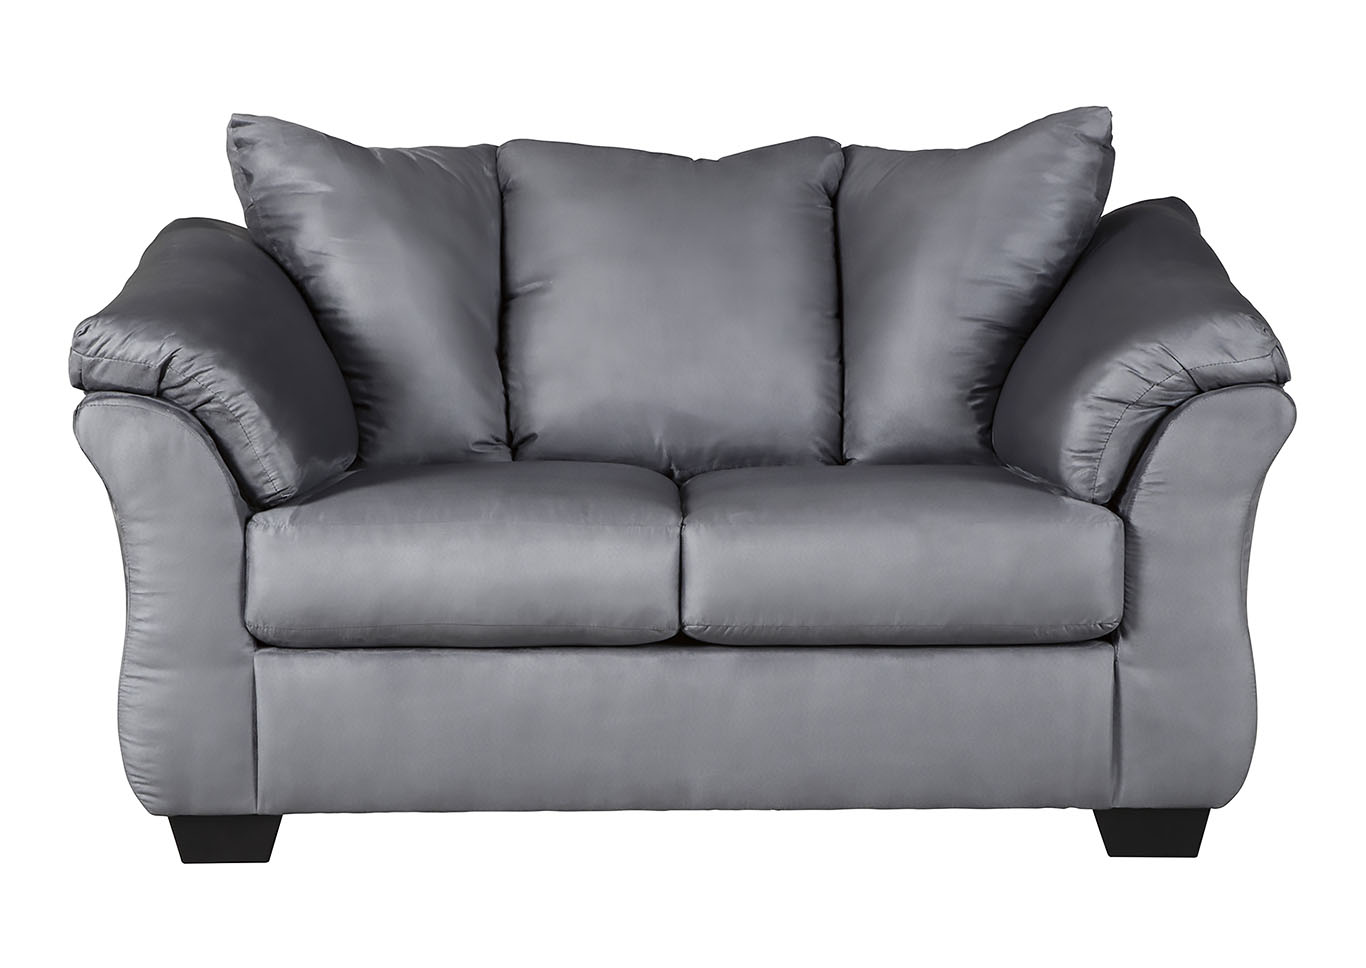 Darcy Steel Loveseat,Signature Design By Ashley